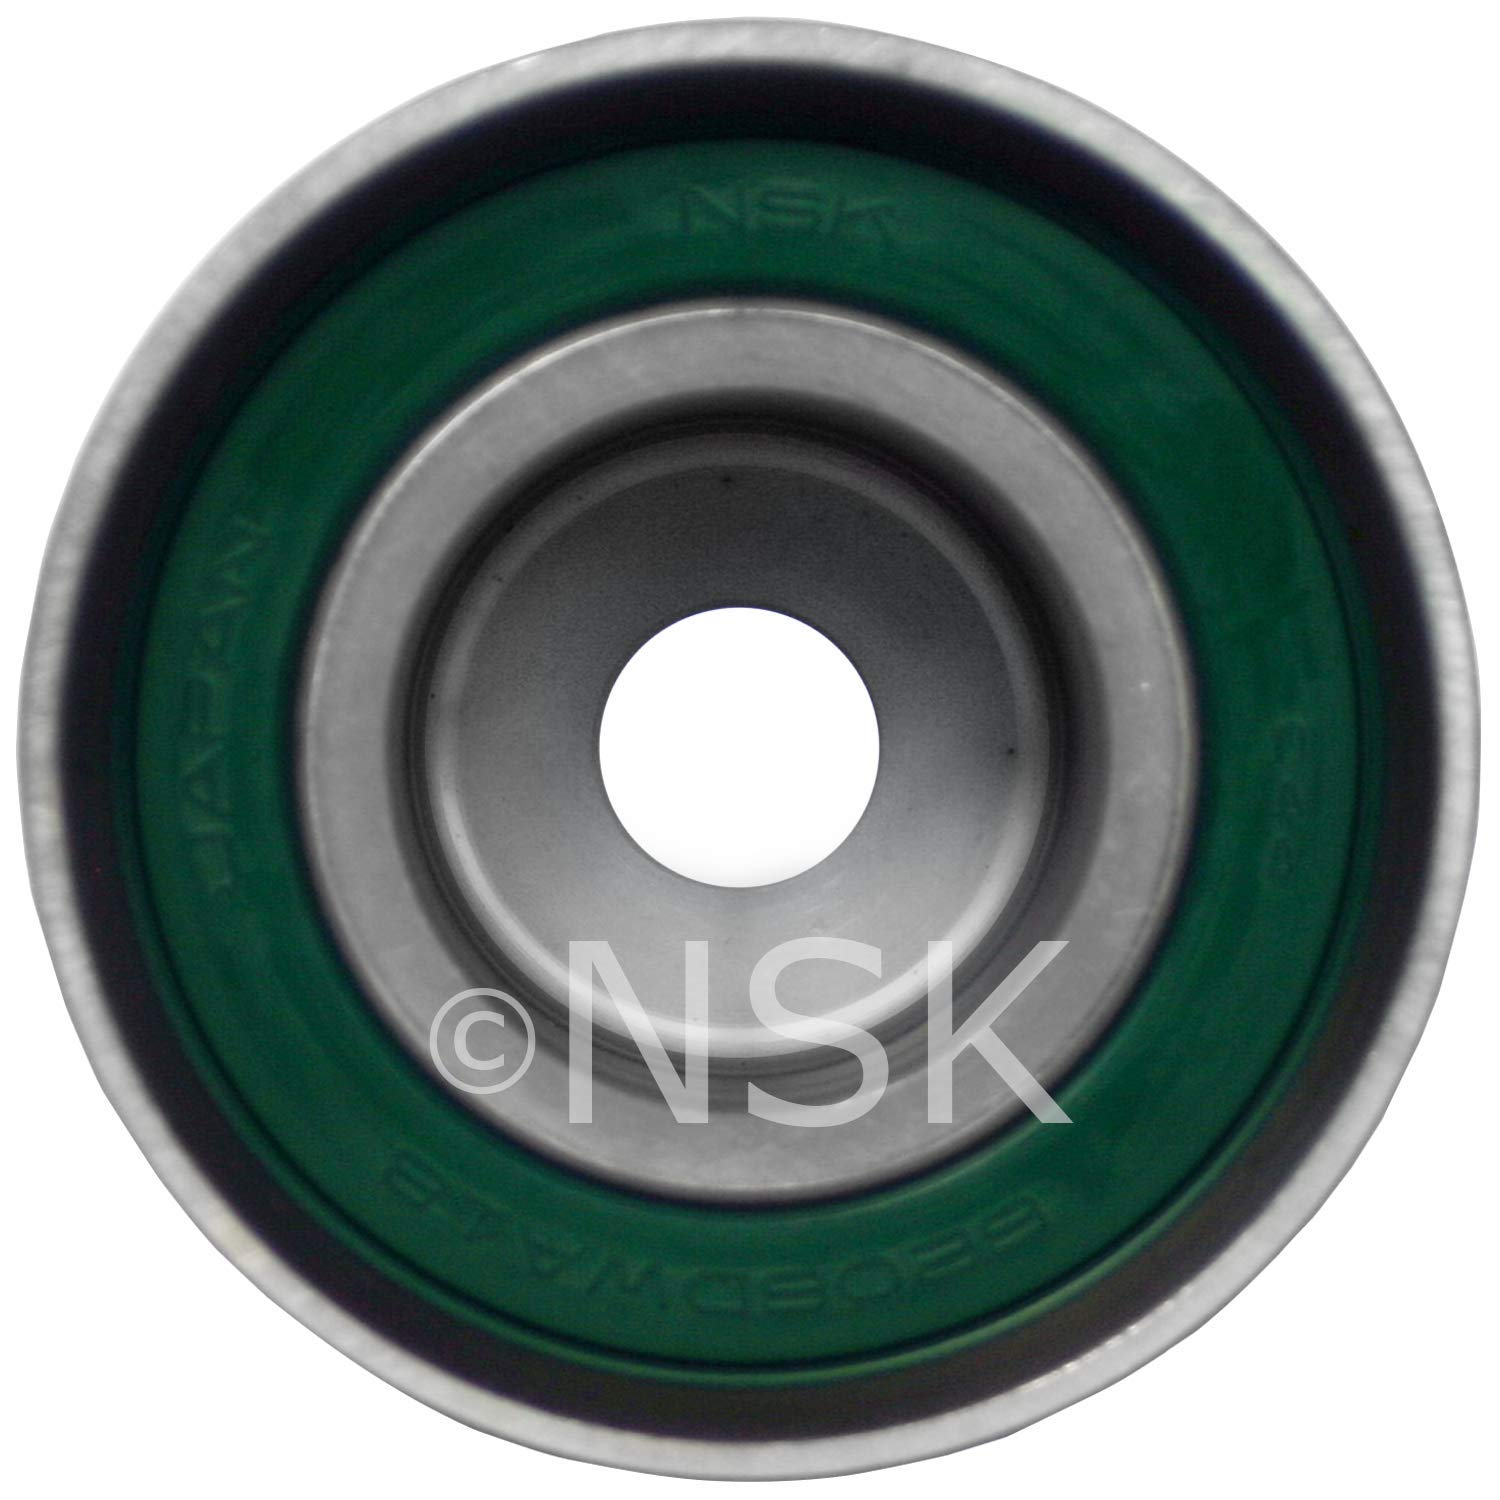 NSK 62STD67T12DDWA18 Engine Timing Belt Idler